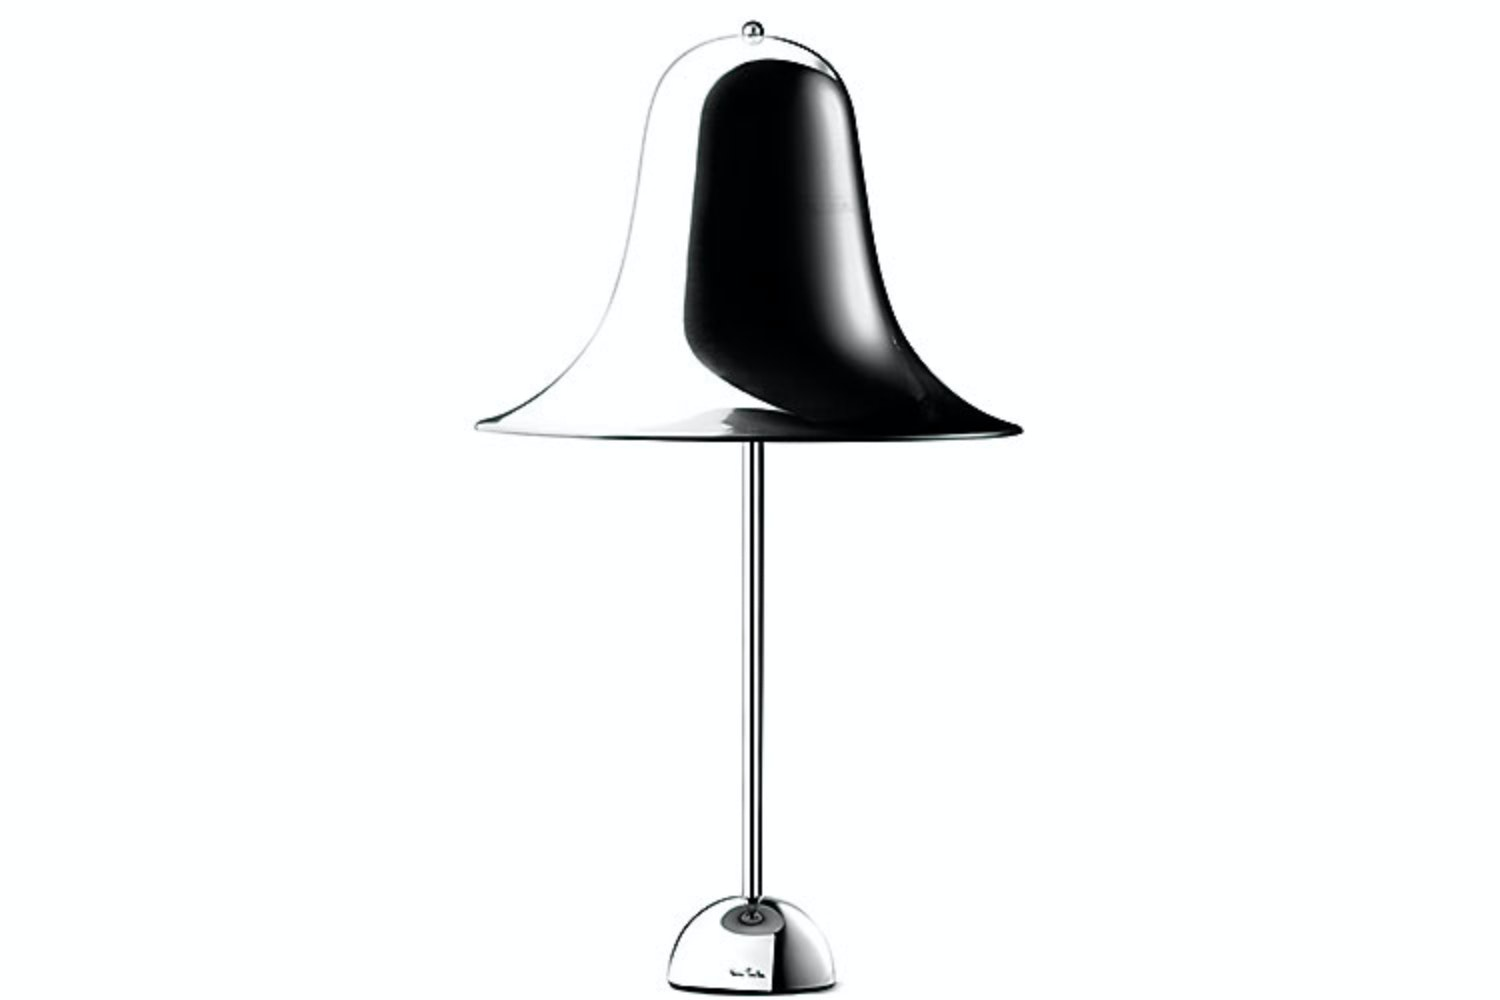 Pantop Table Lamp in Chrome by Verner Panton for Verpan